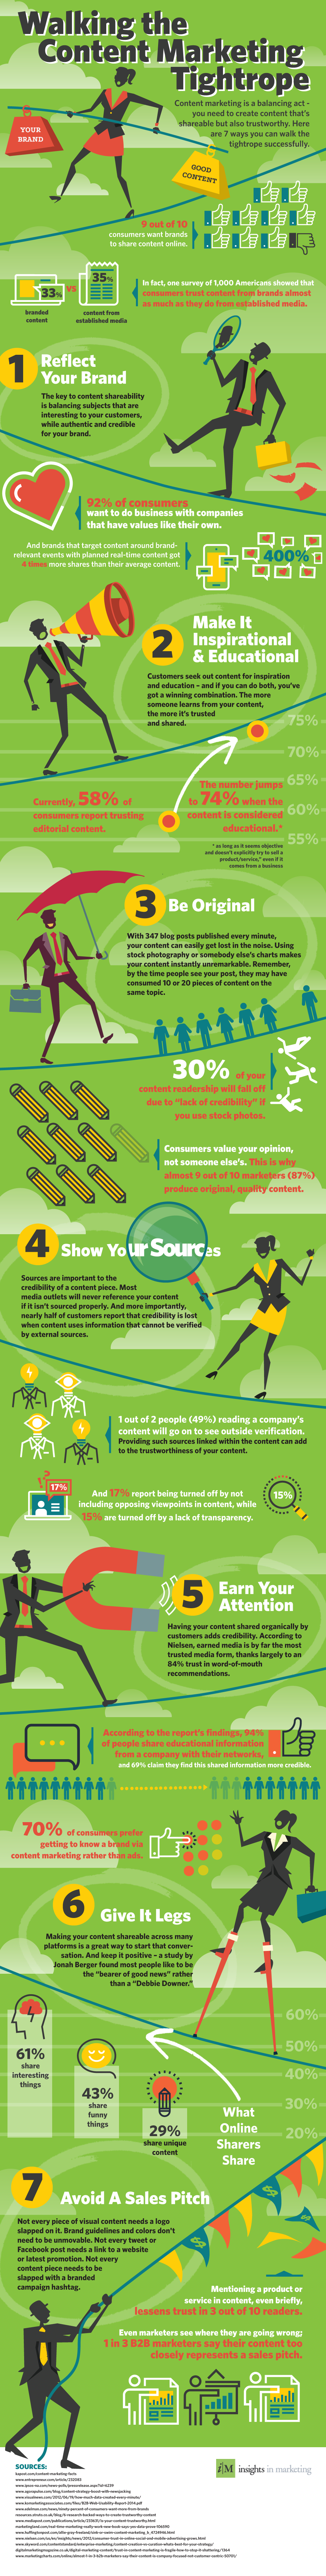 #Infographic: 7 Ways to Walk the Content Marketing Tightrope